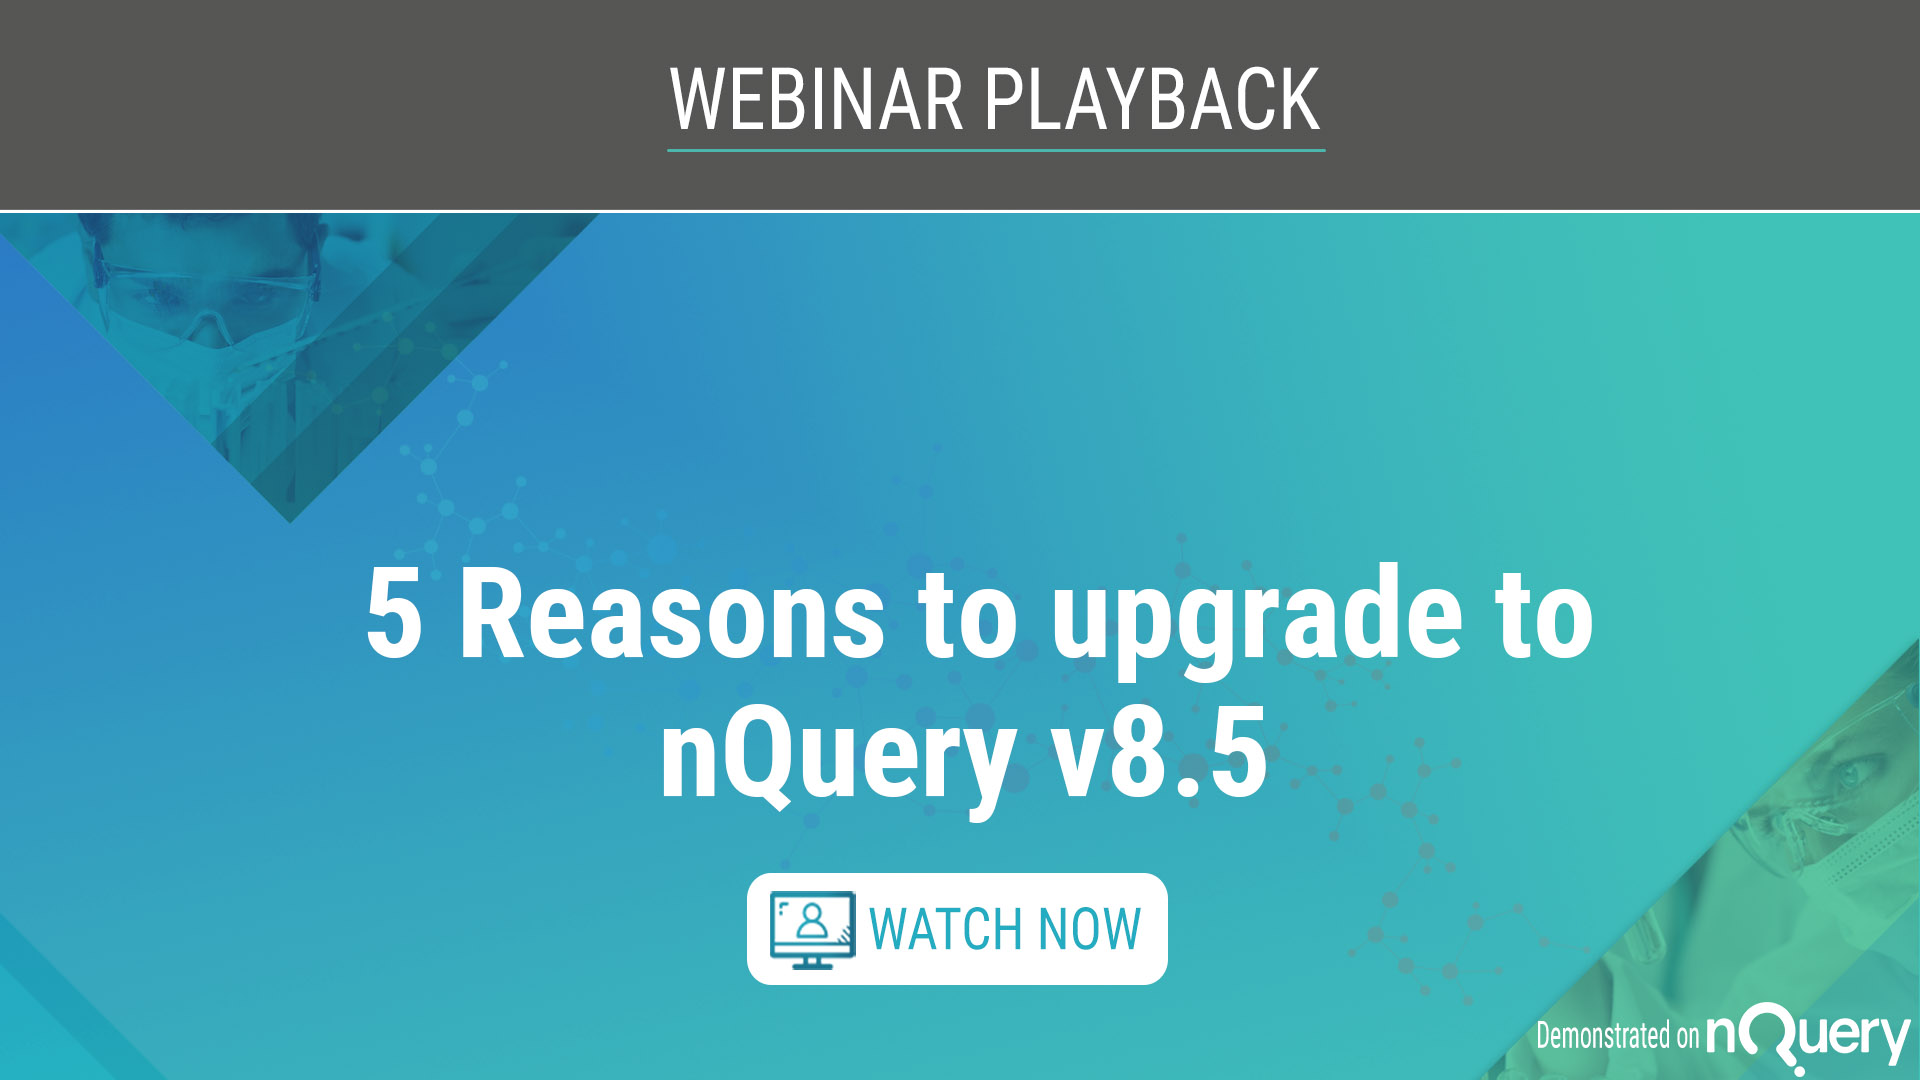 5-reasons-to-upgrade-to-nquery-v85-webinar-playback